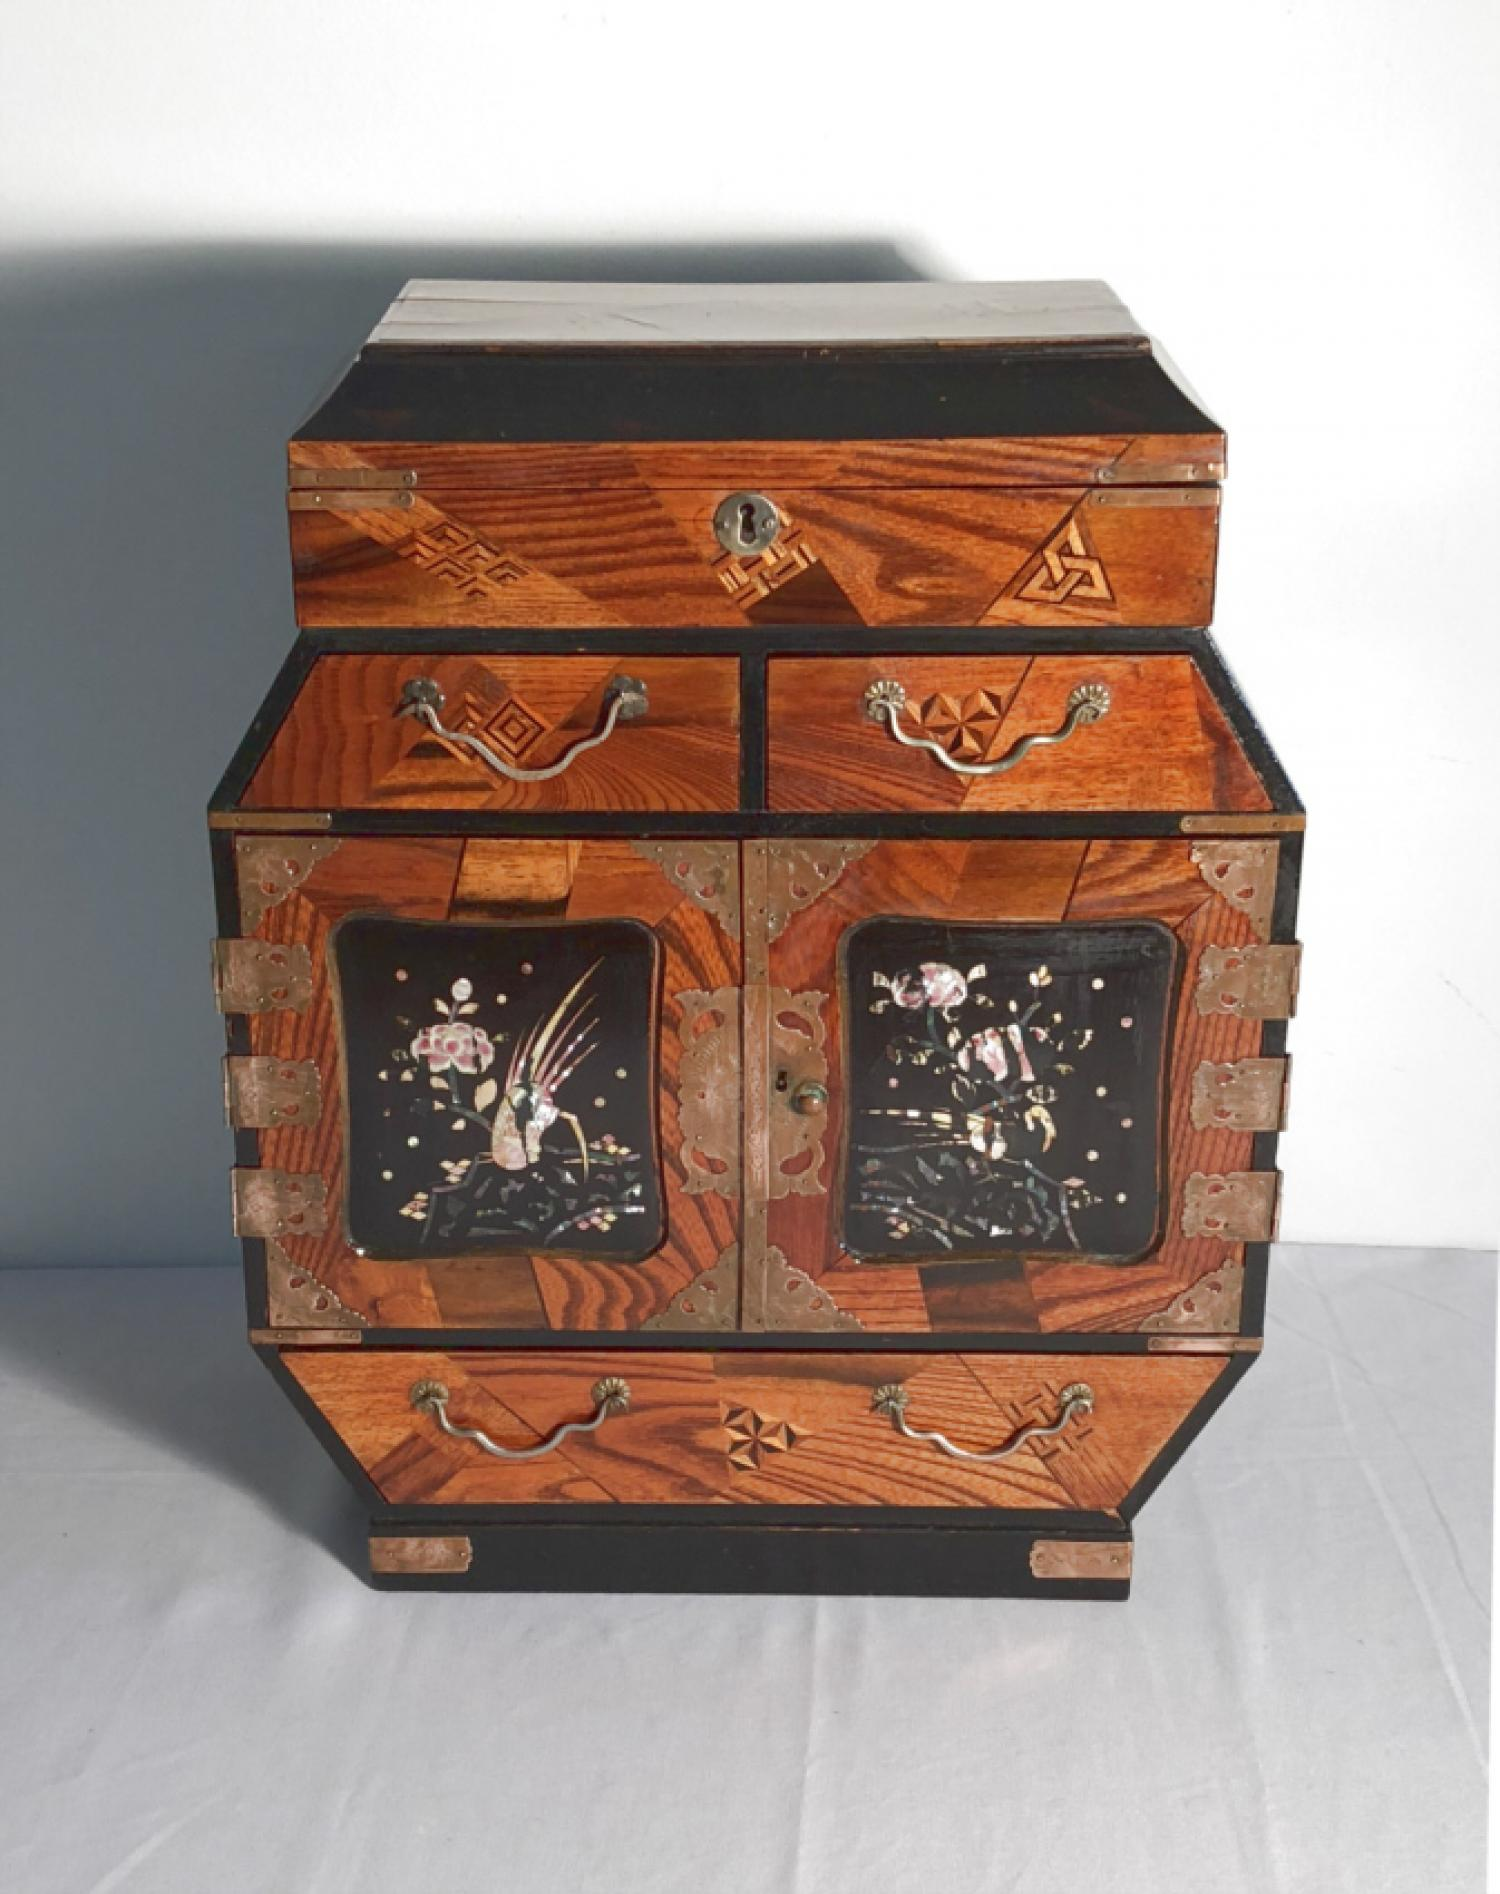 Japanese parquetry jewelry or valuables box